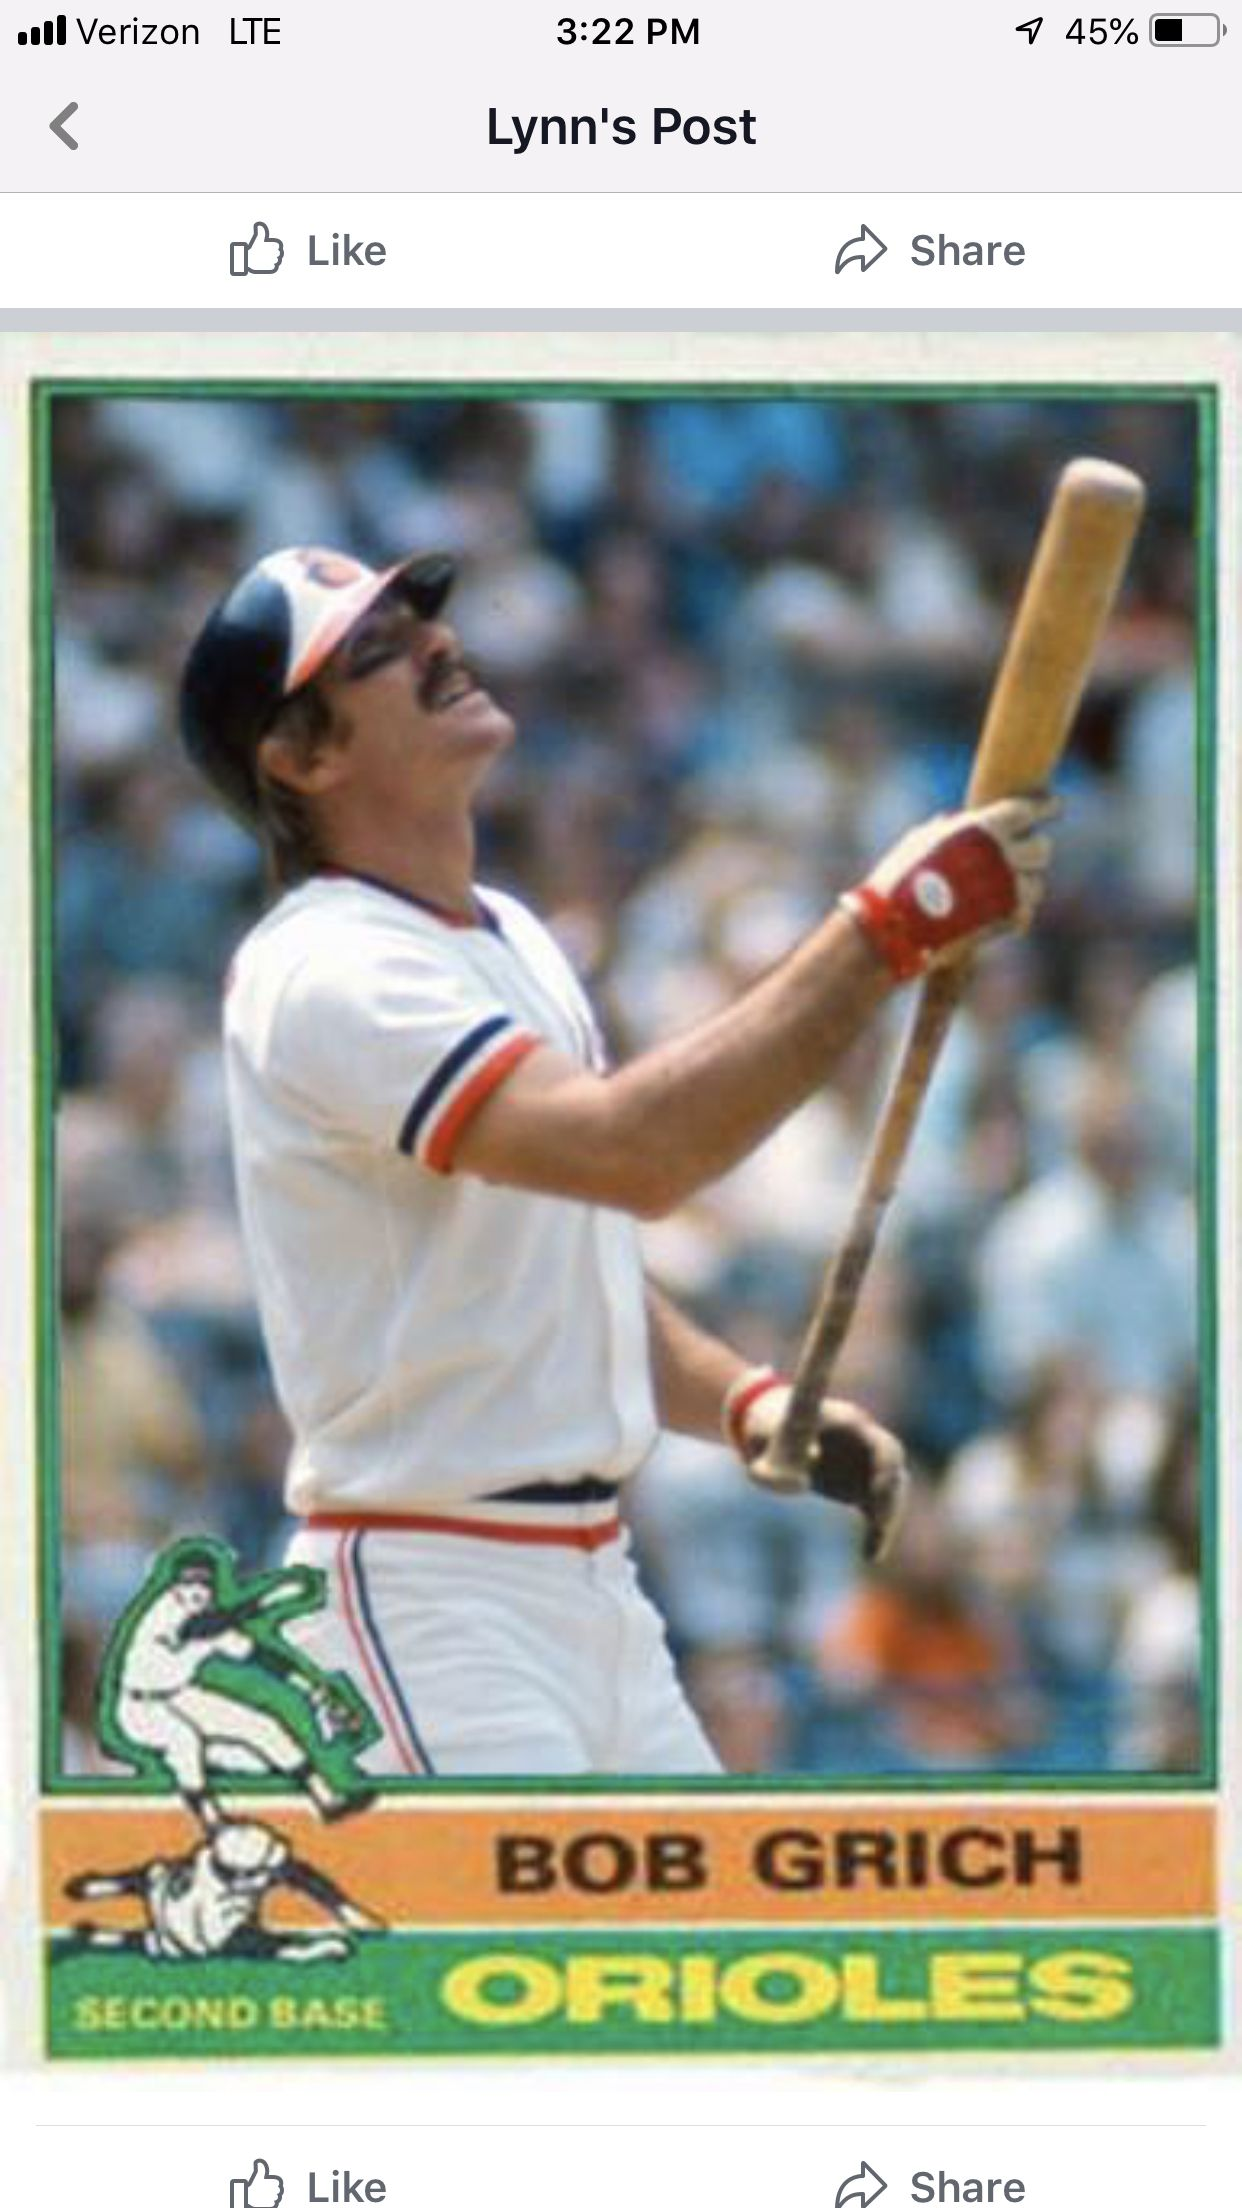 Pin By Al Eckels On Baltimore Orioles 1972 1978 Orioles Baseball Baltimore Orioles Baltimore Orioles Baseball